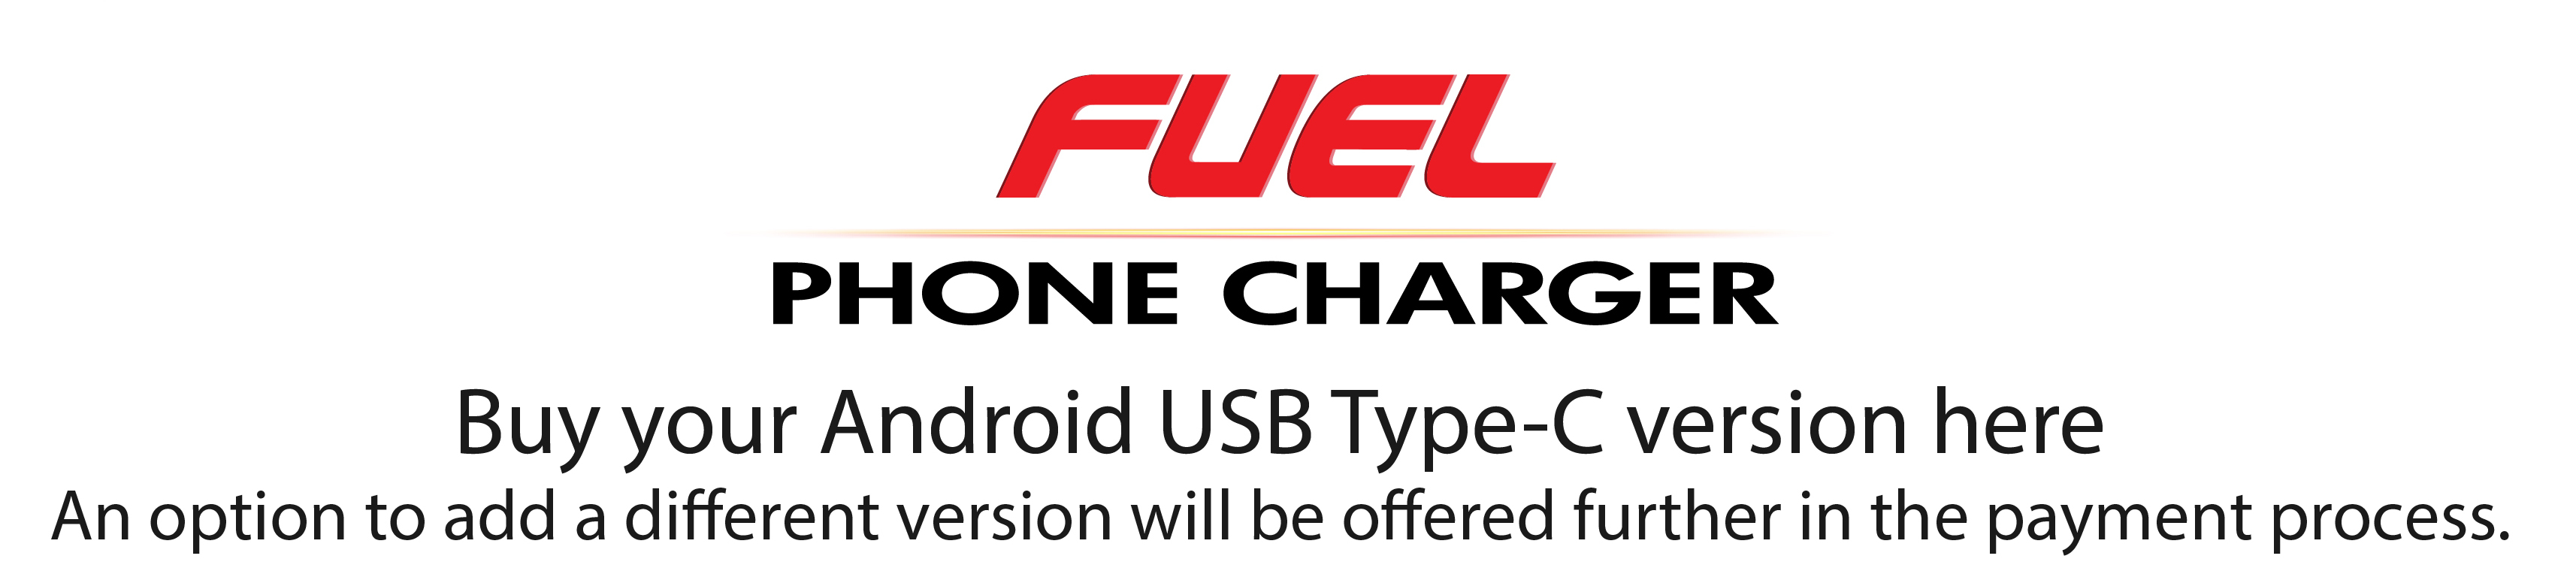 devotec fuel2 phonecharger